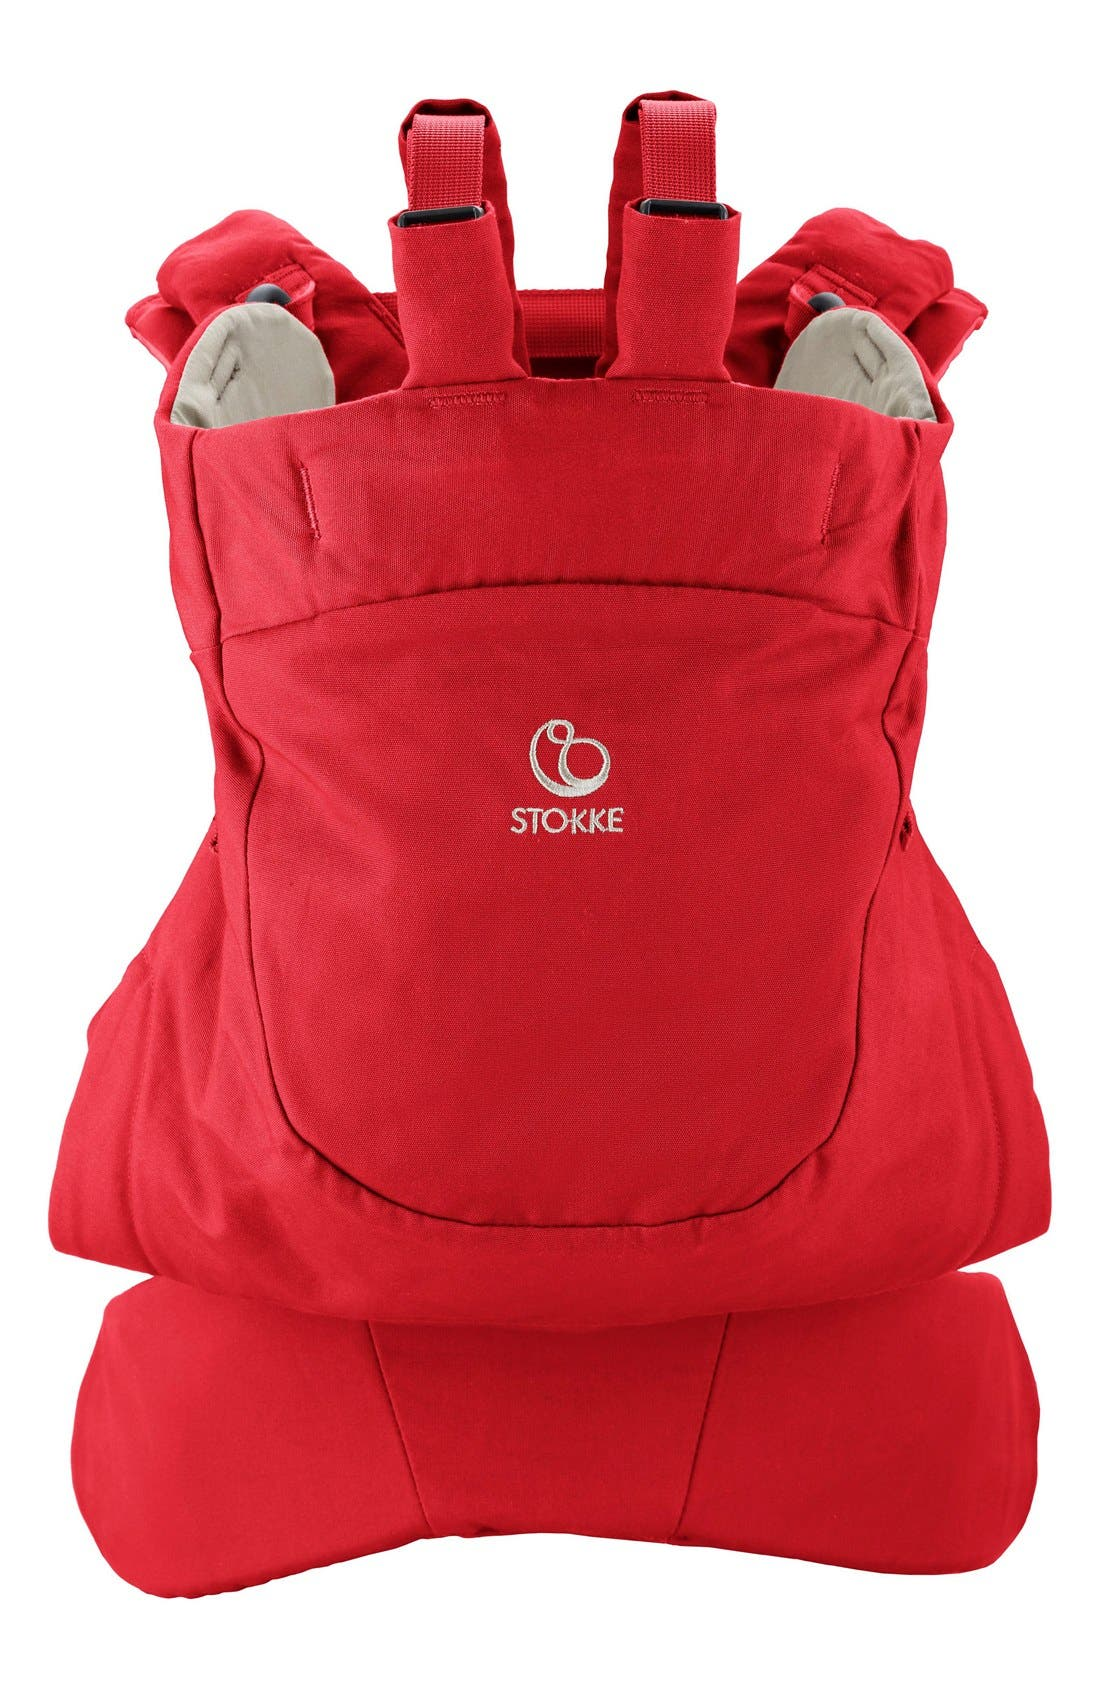 Stokke MyCarrier Front/Back Baby Carrier